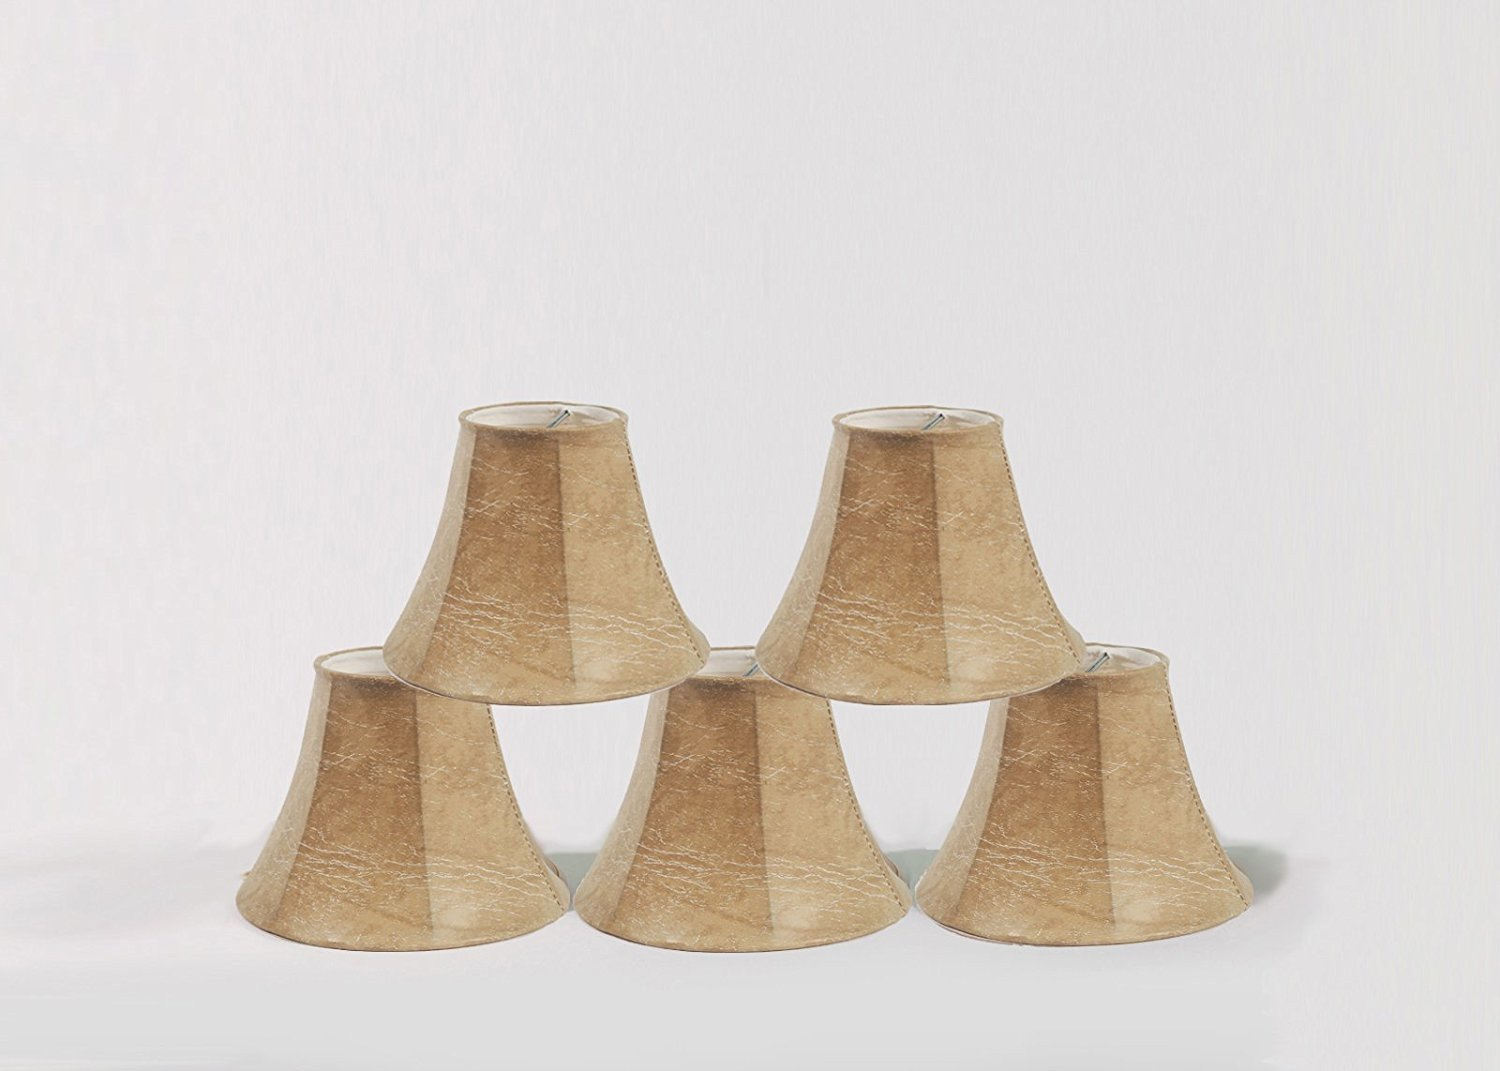 Faux leather chandelier mini lamp shade 5 and 6 sizes urbanest faux leather chandelier mini lamp shade 5 and 6 sizes aloadofball Choice Image